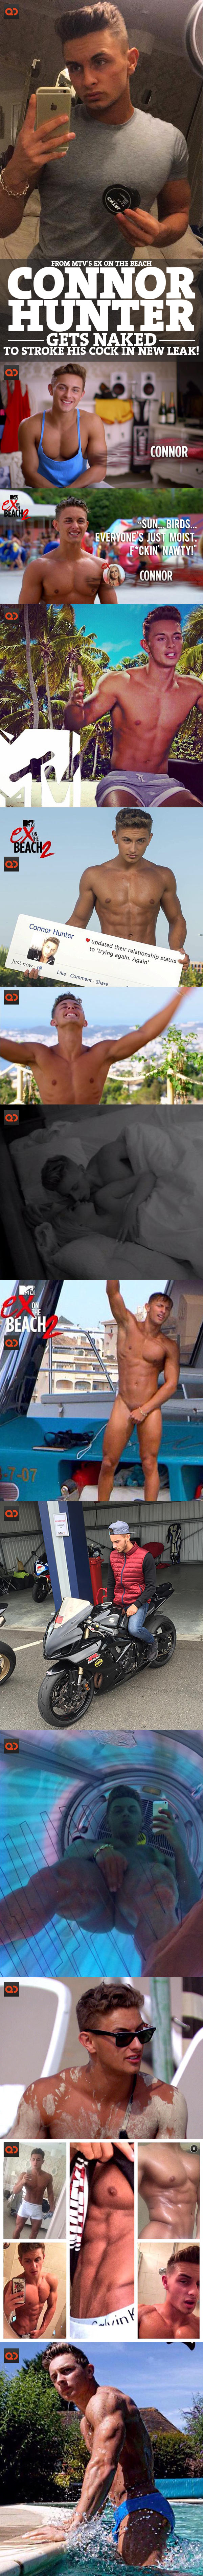 Connor Hunter, From MTV's Ex On The Beach, Gets Naked To Stroke His Cock In New Leak!